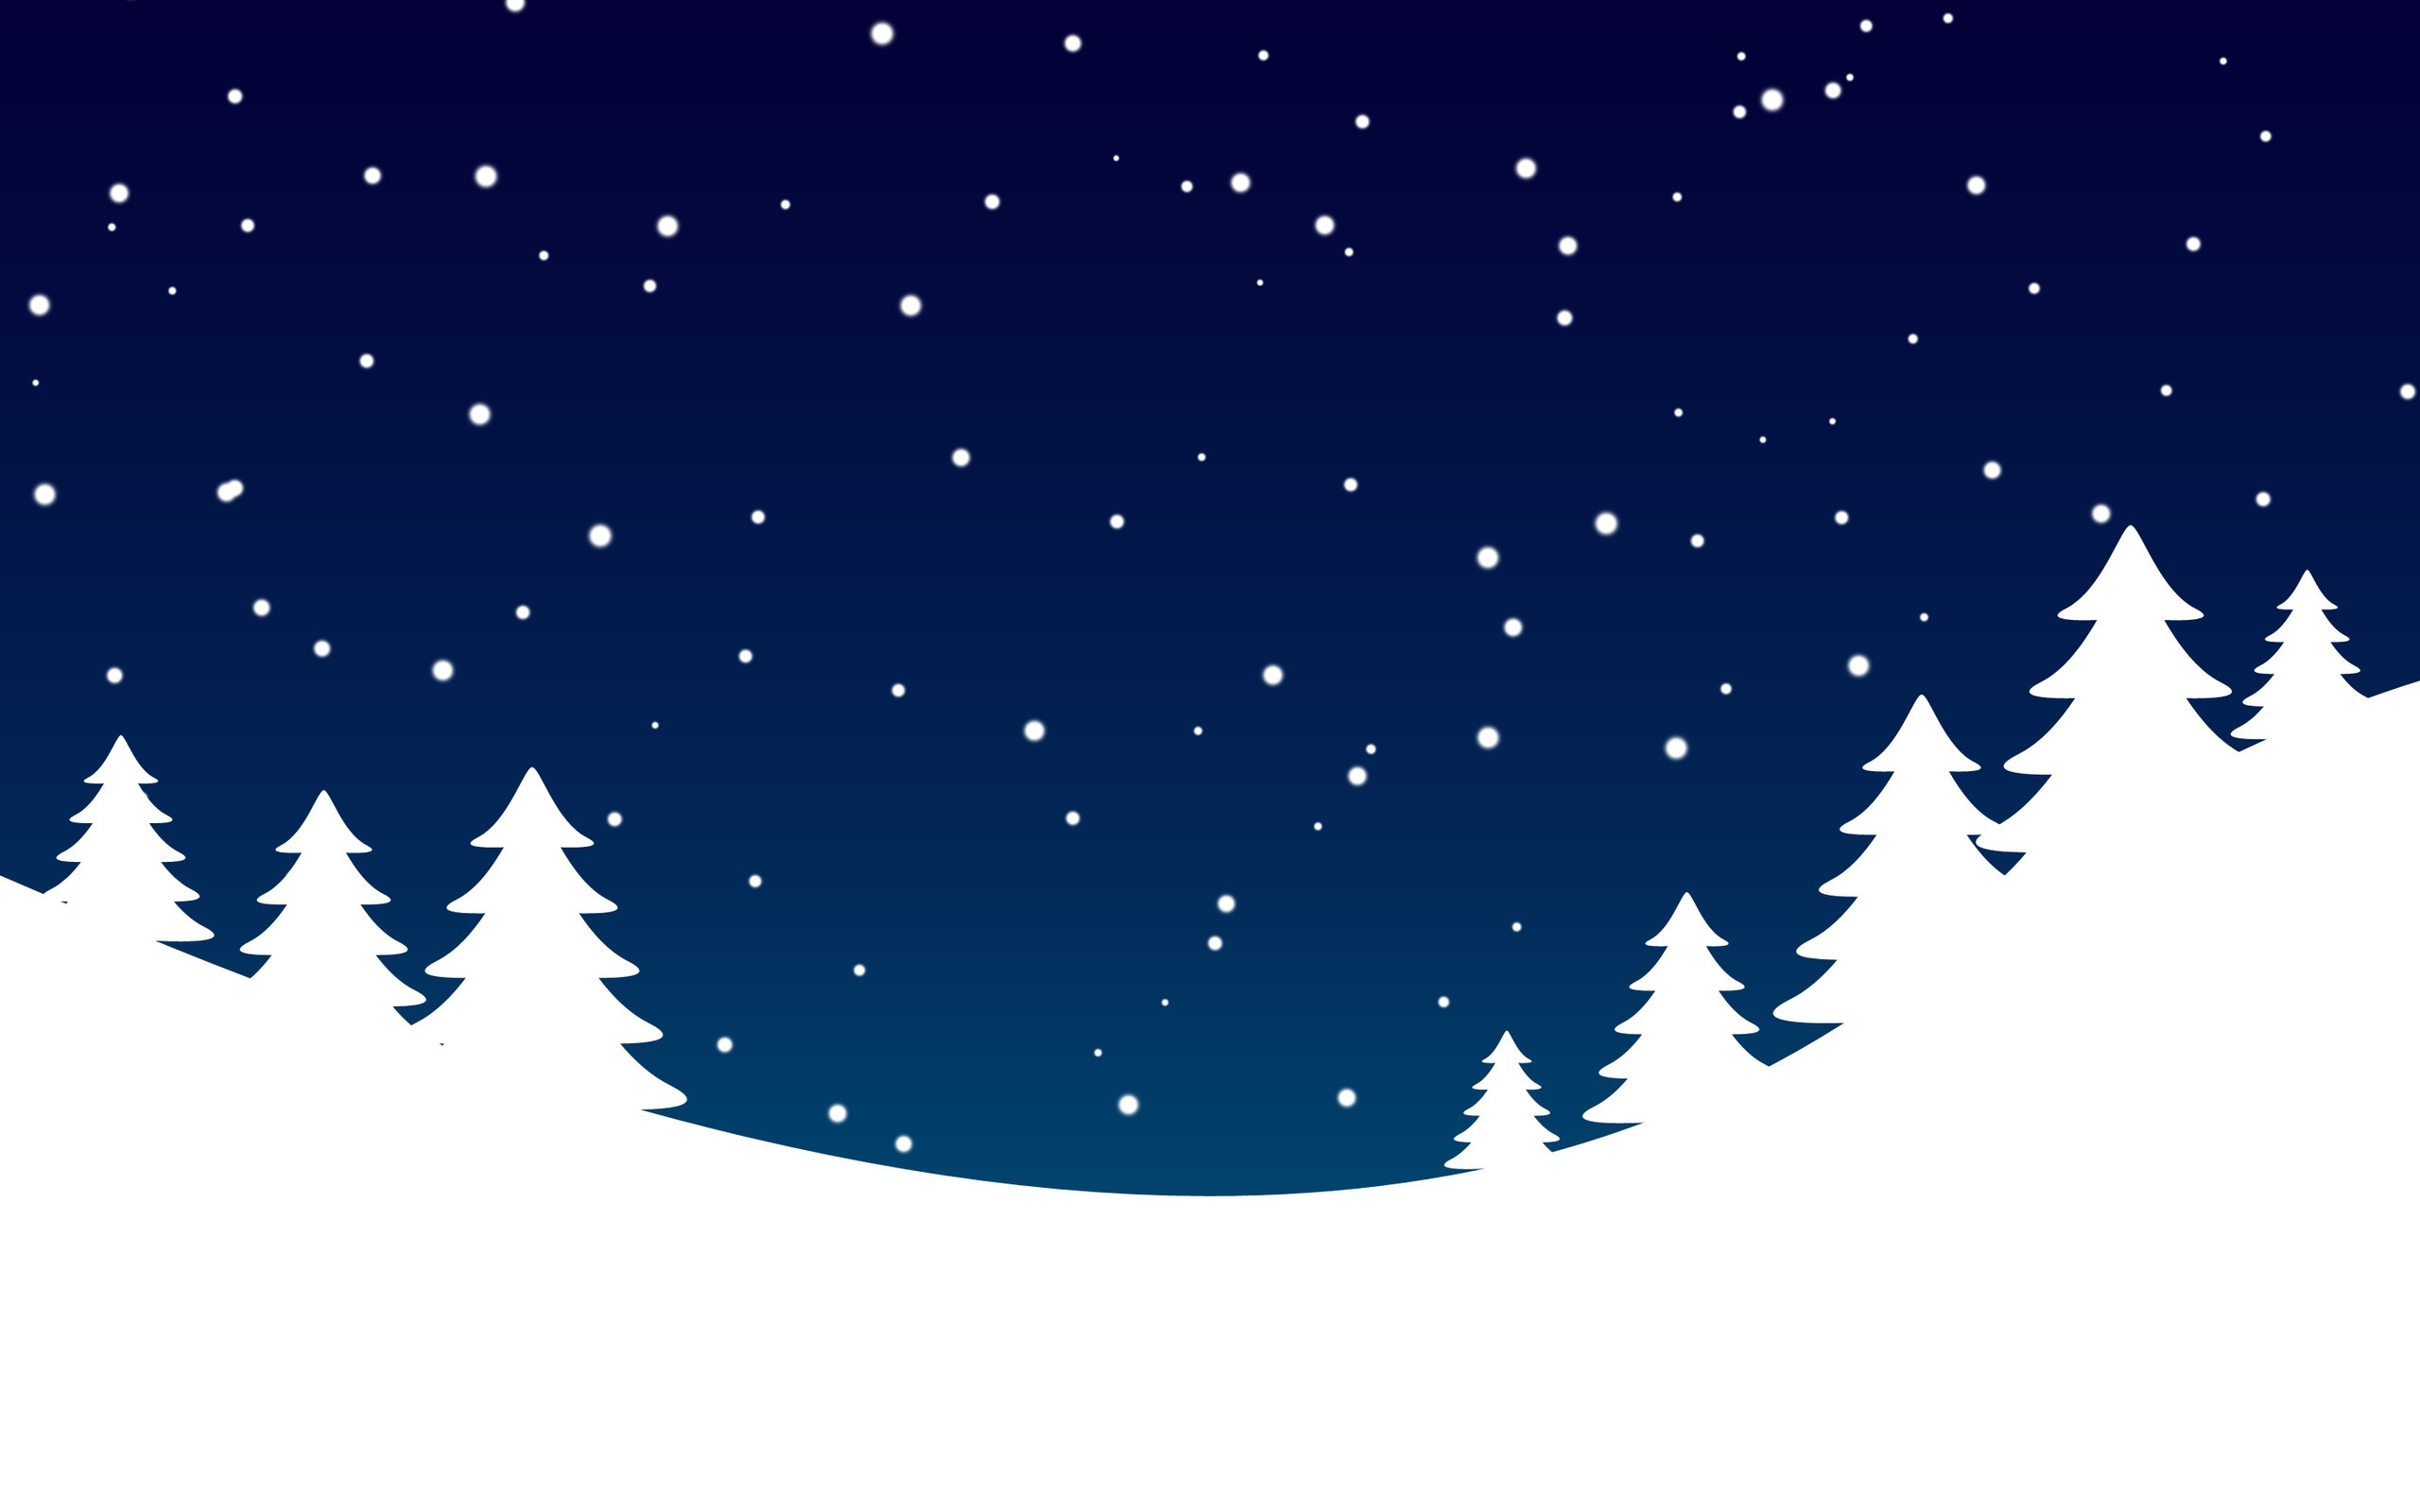 Winter Png Hd Transparent Winter Hd Png Images Pluspng